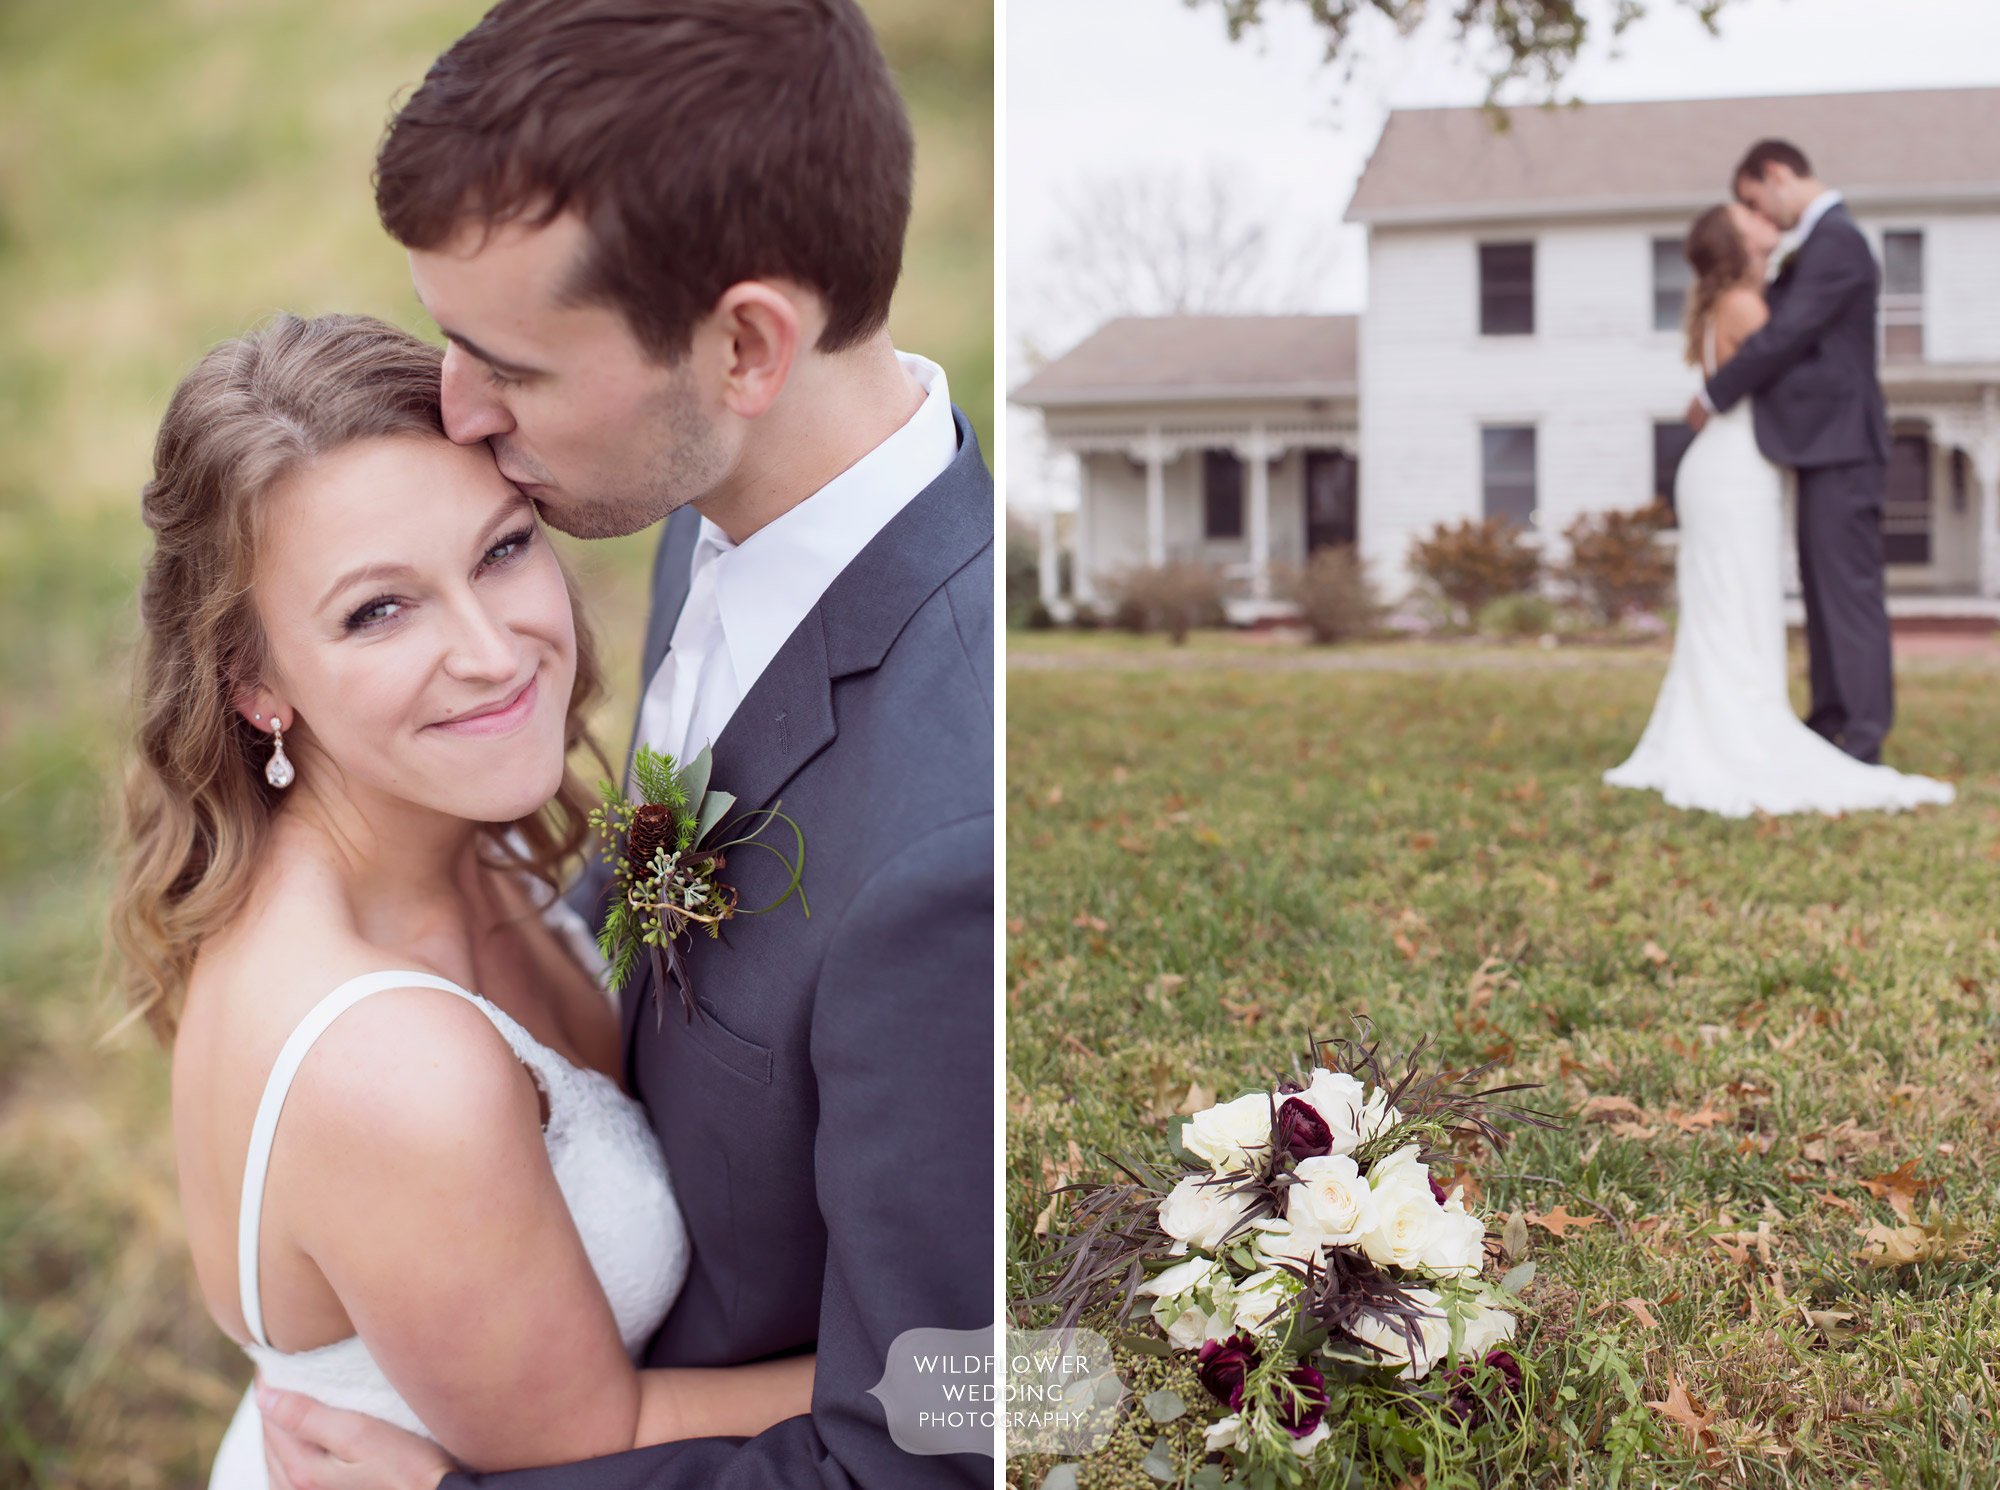 Natural wedding portrait of the bride and groom smiling at this barn wedding venue.